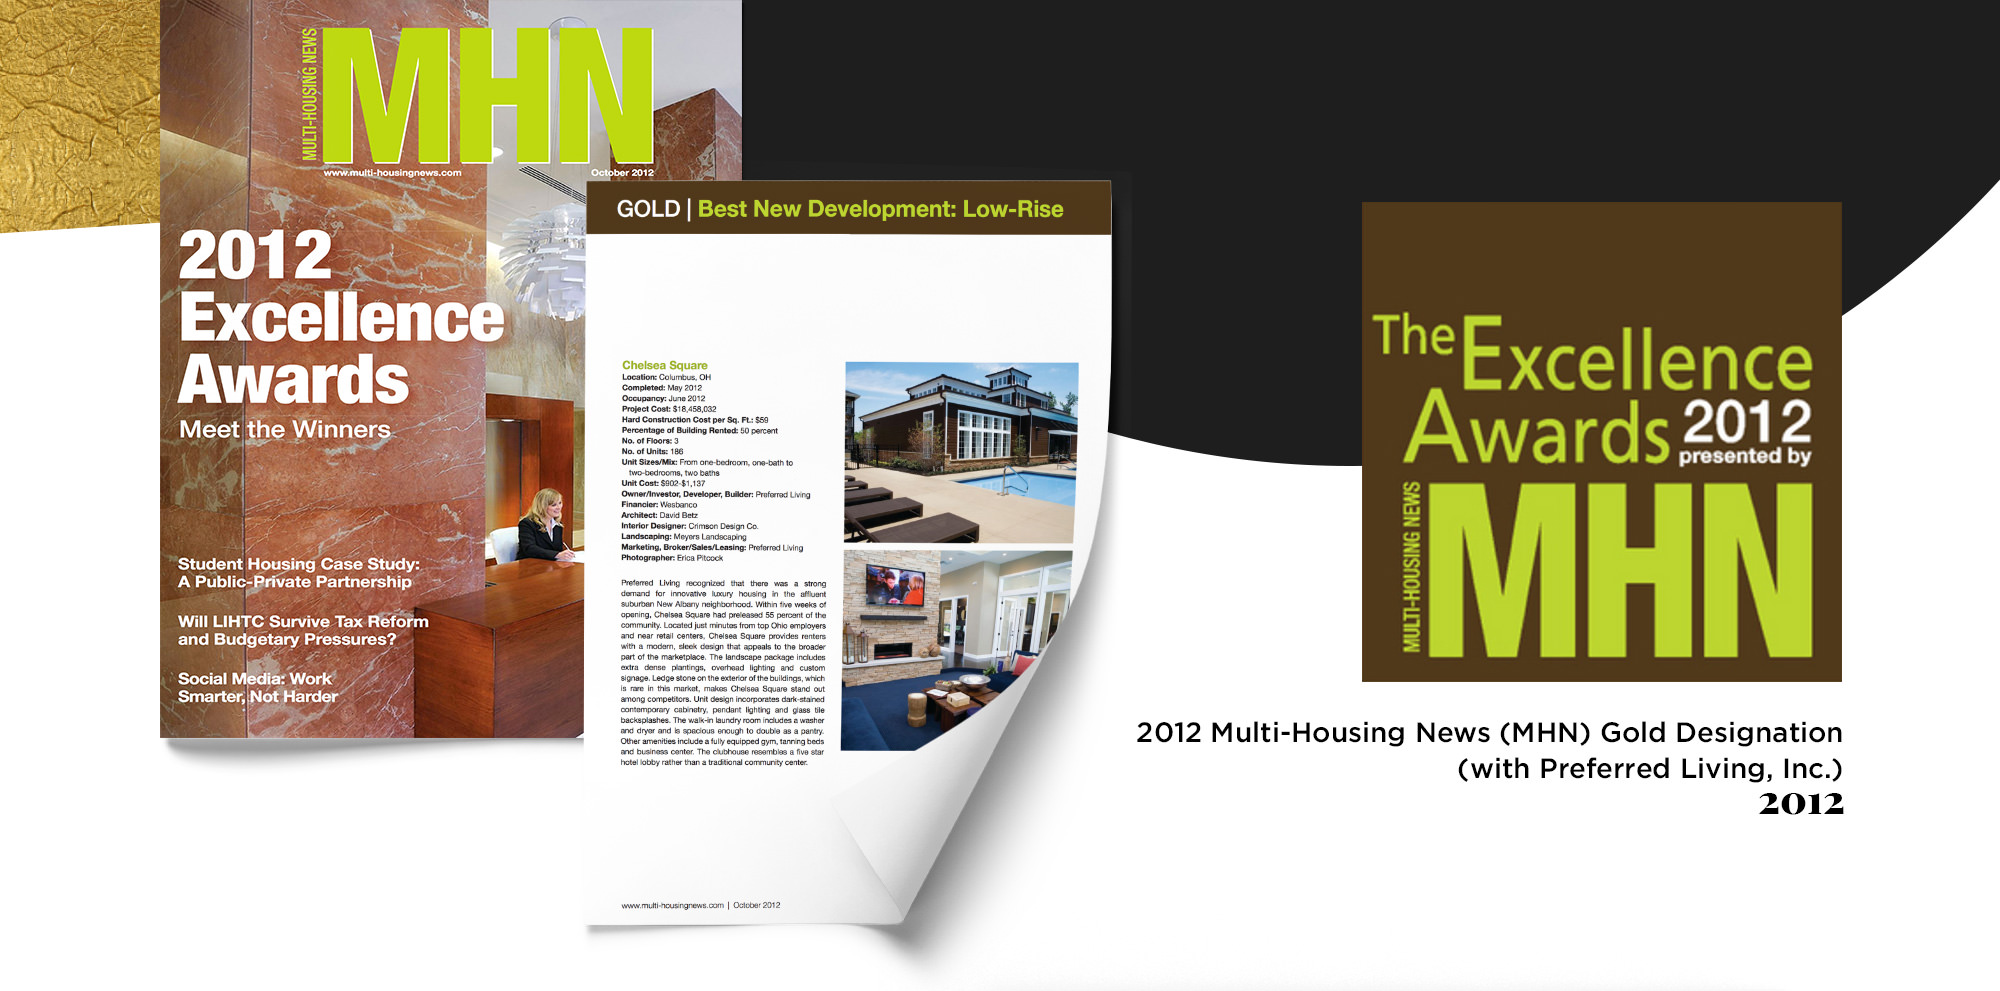 Multi-Housing News Excellence Award